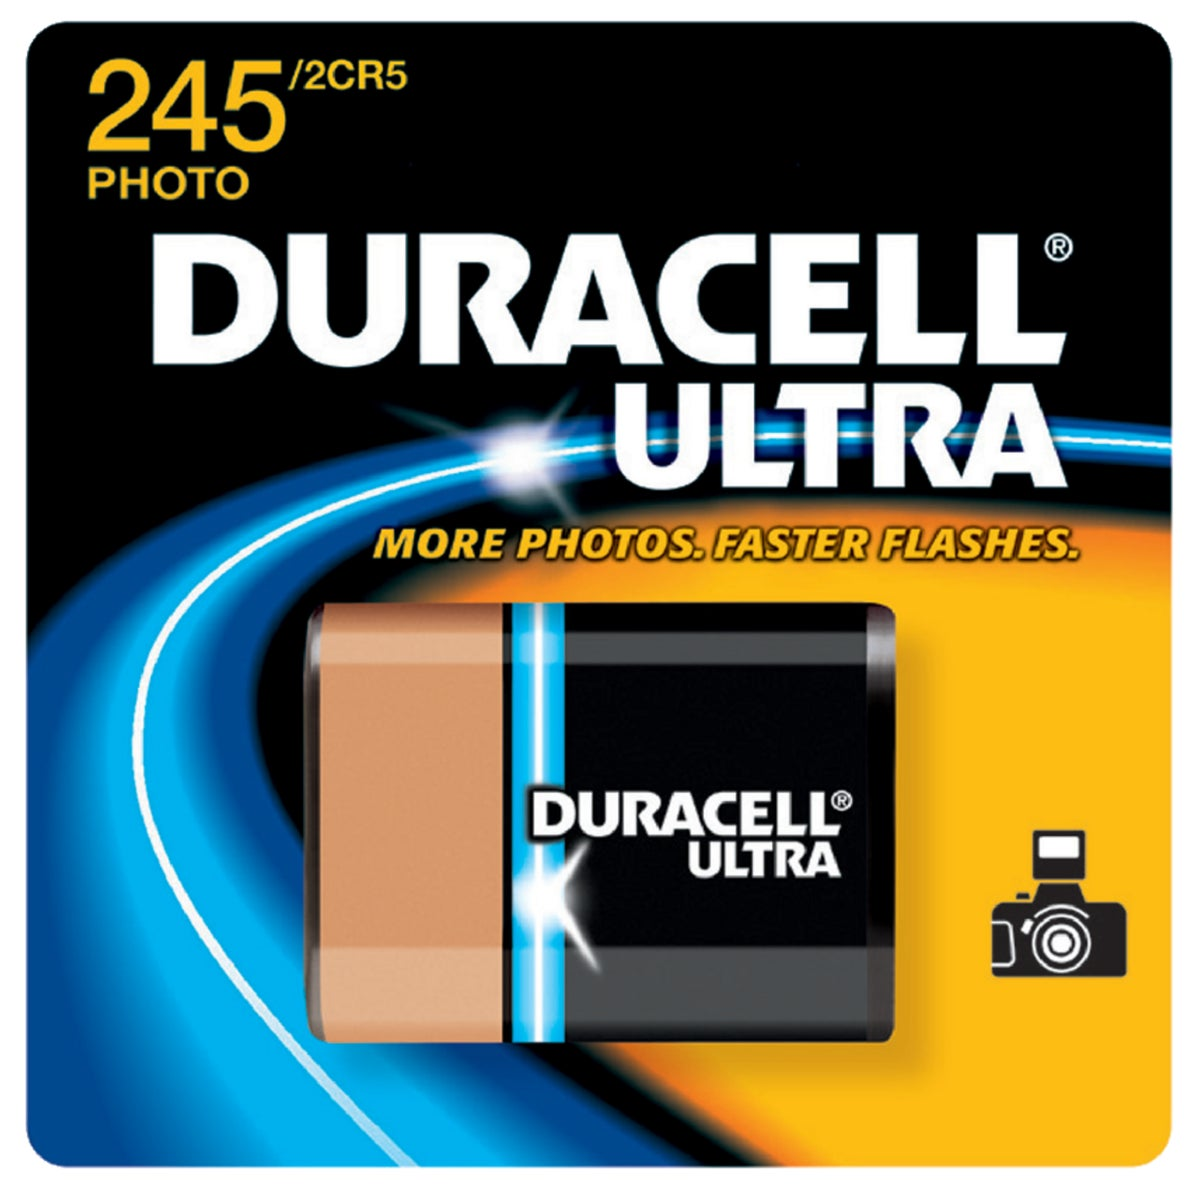 DL245 6V CAMERA BATTERY - 27587 by P & G  Duracell